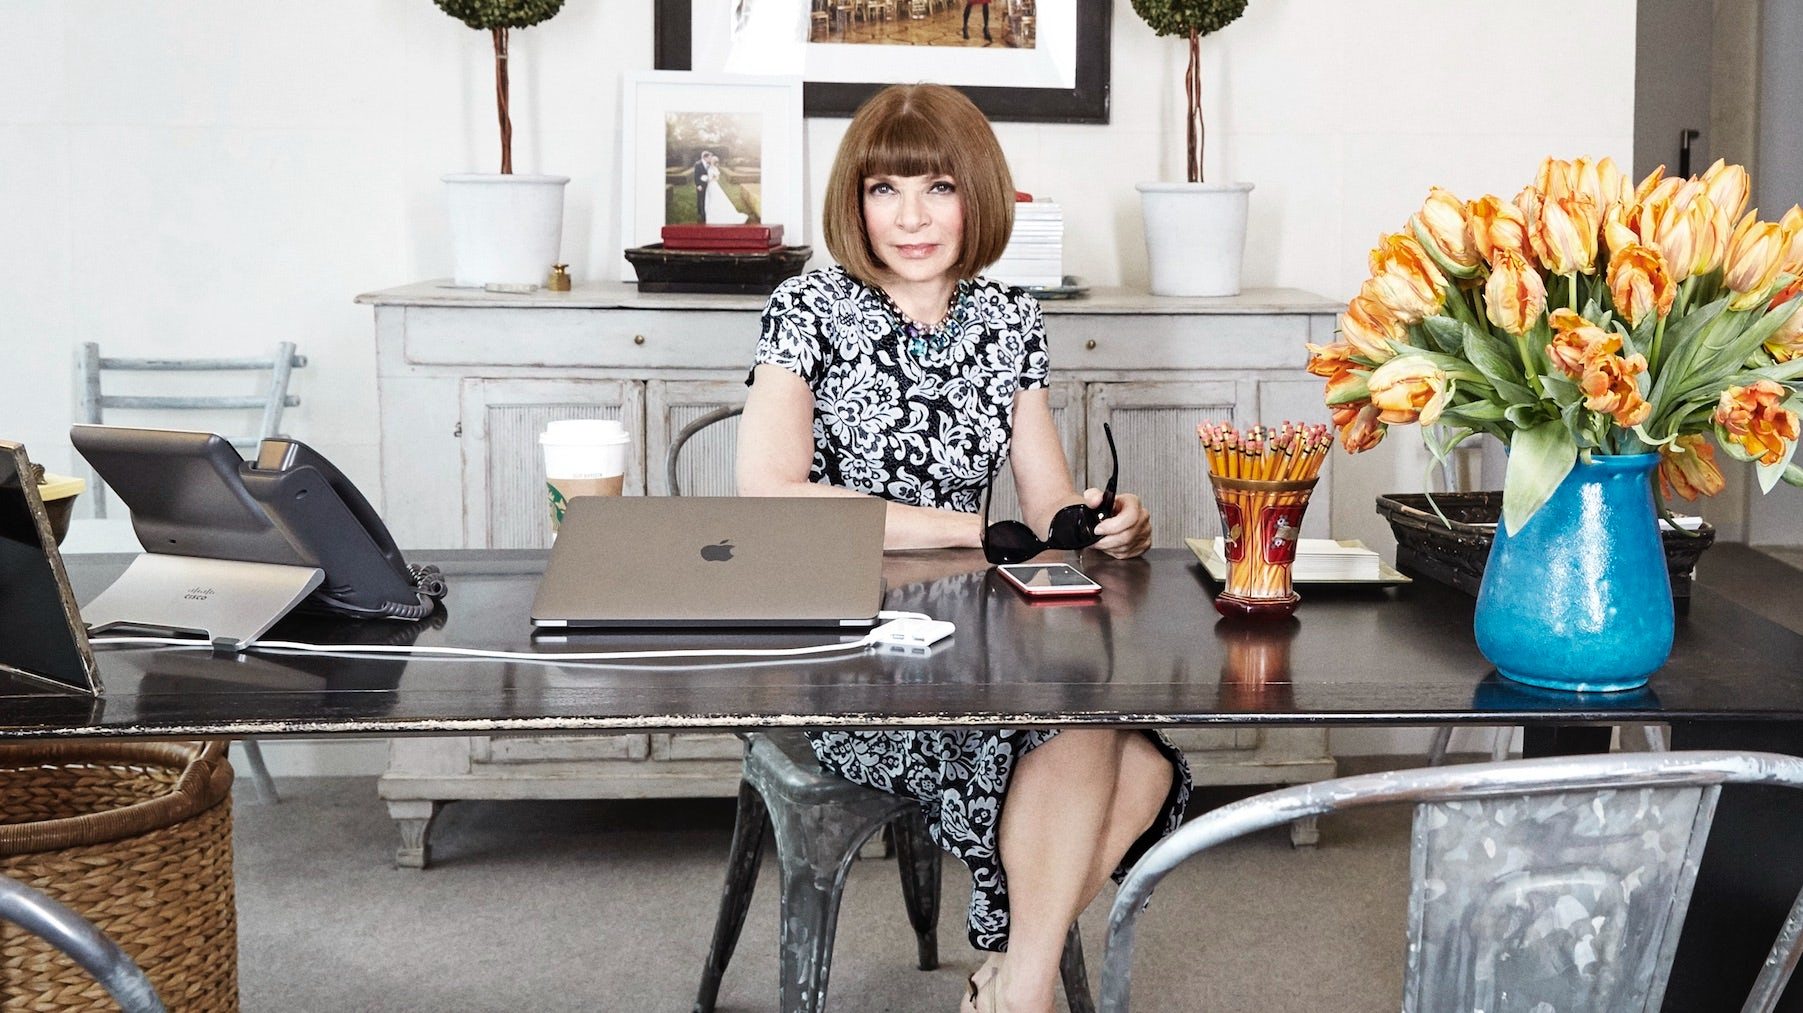 Anna Wintour | Photo: Patrick Demarchelier